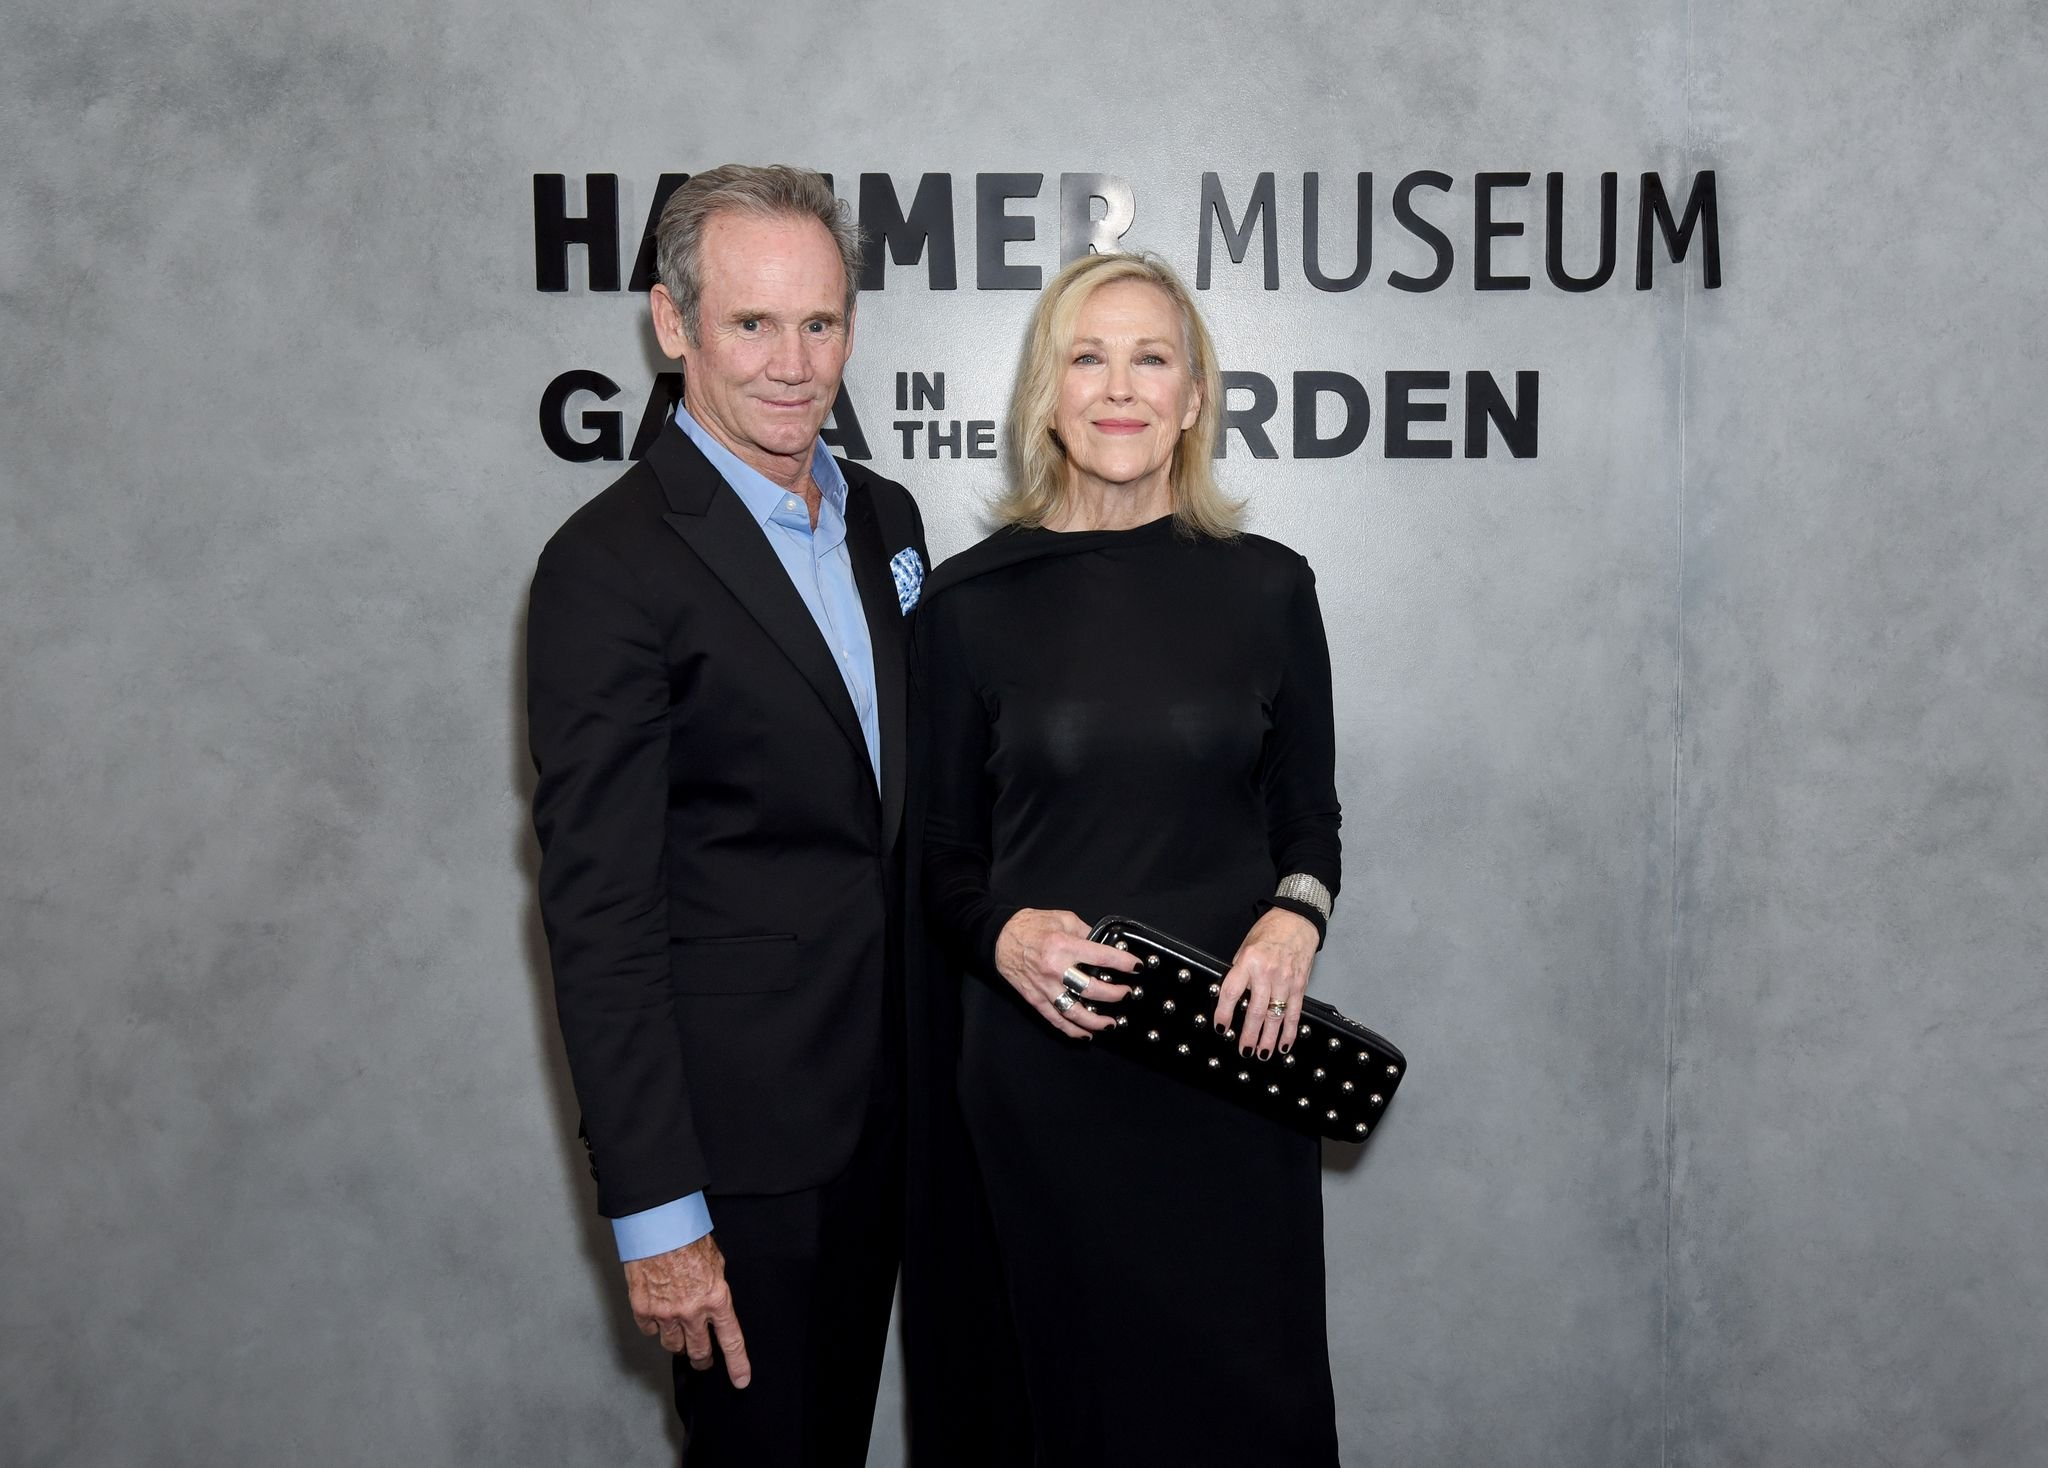 Bo Welch and Catherine O'Hara at the Hammer Museum's 17th Annual Gala in 2019 in Los Angeles | Source: Getty Images